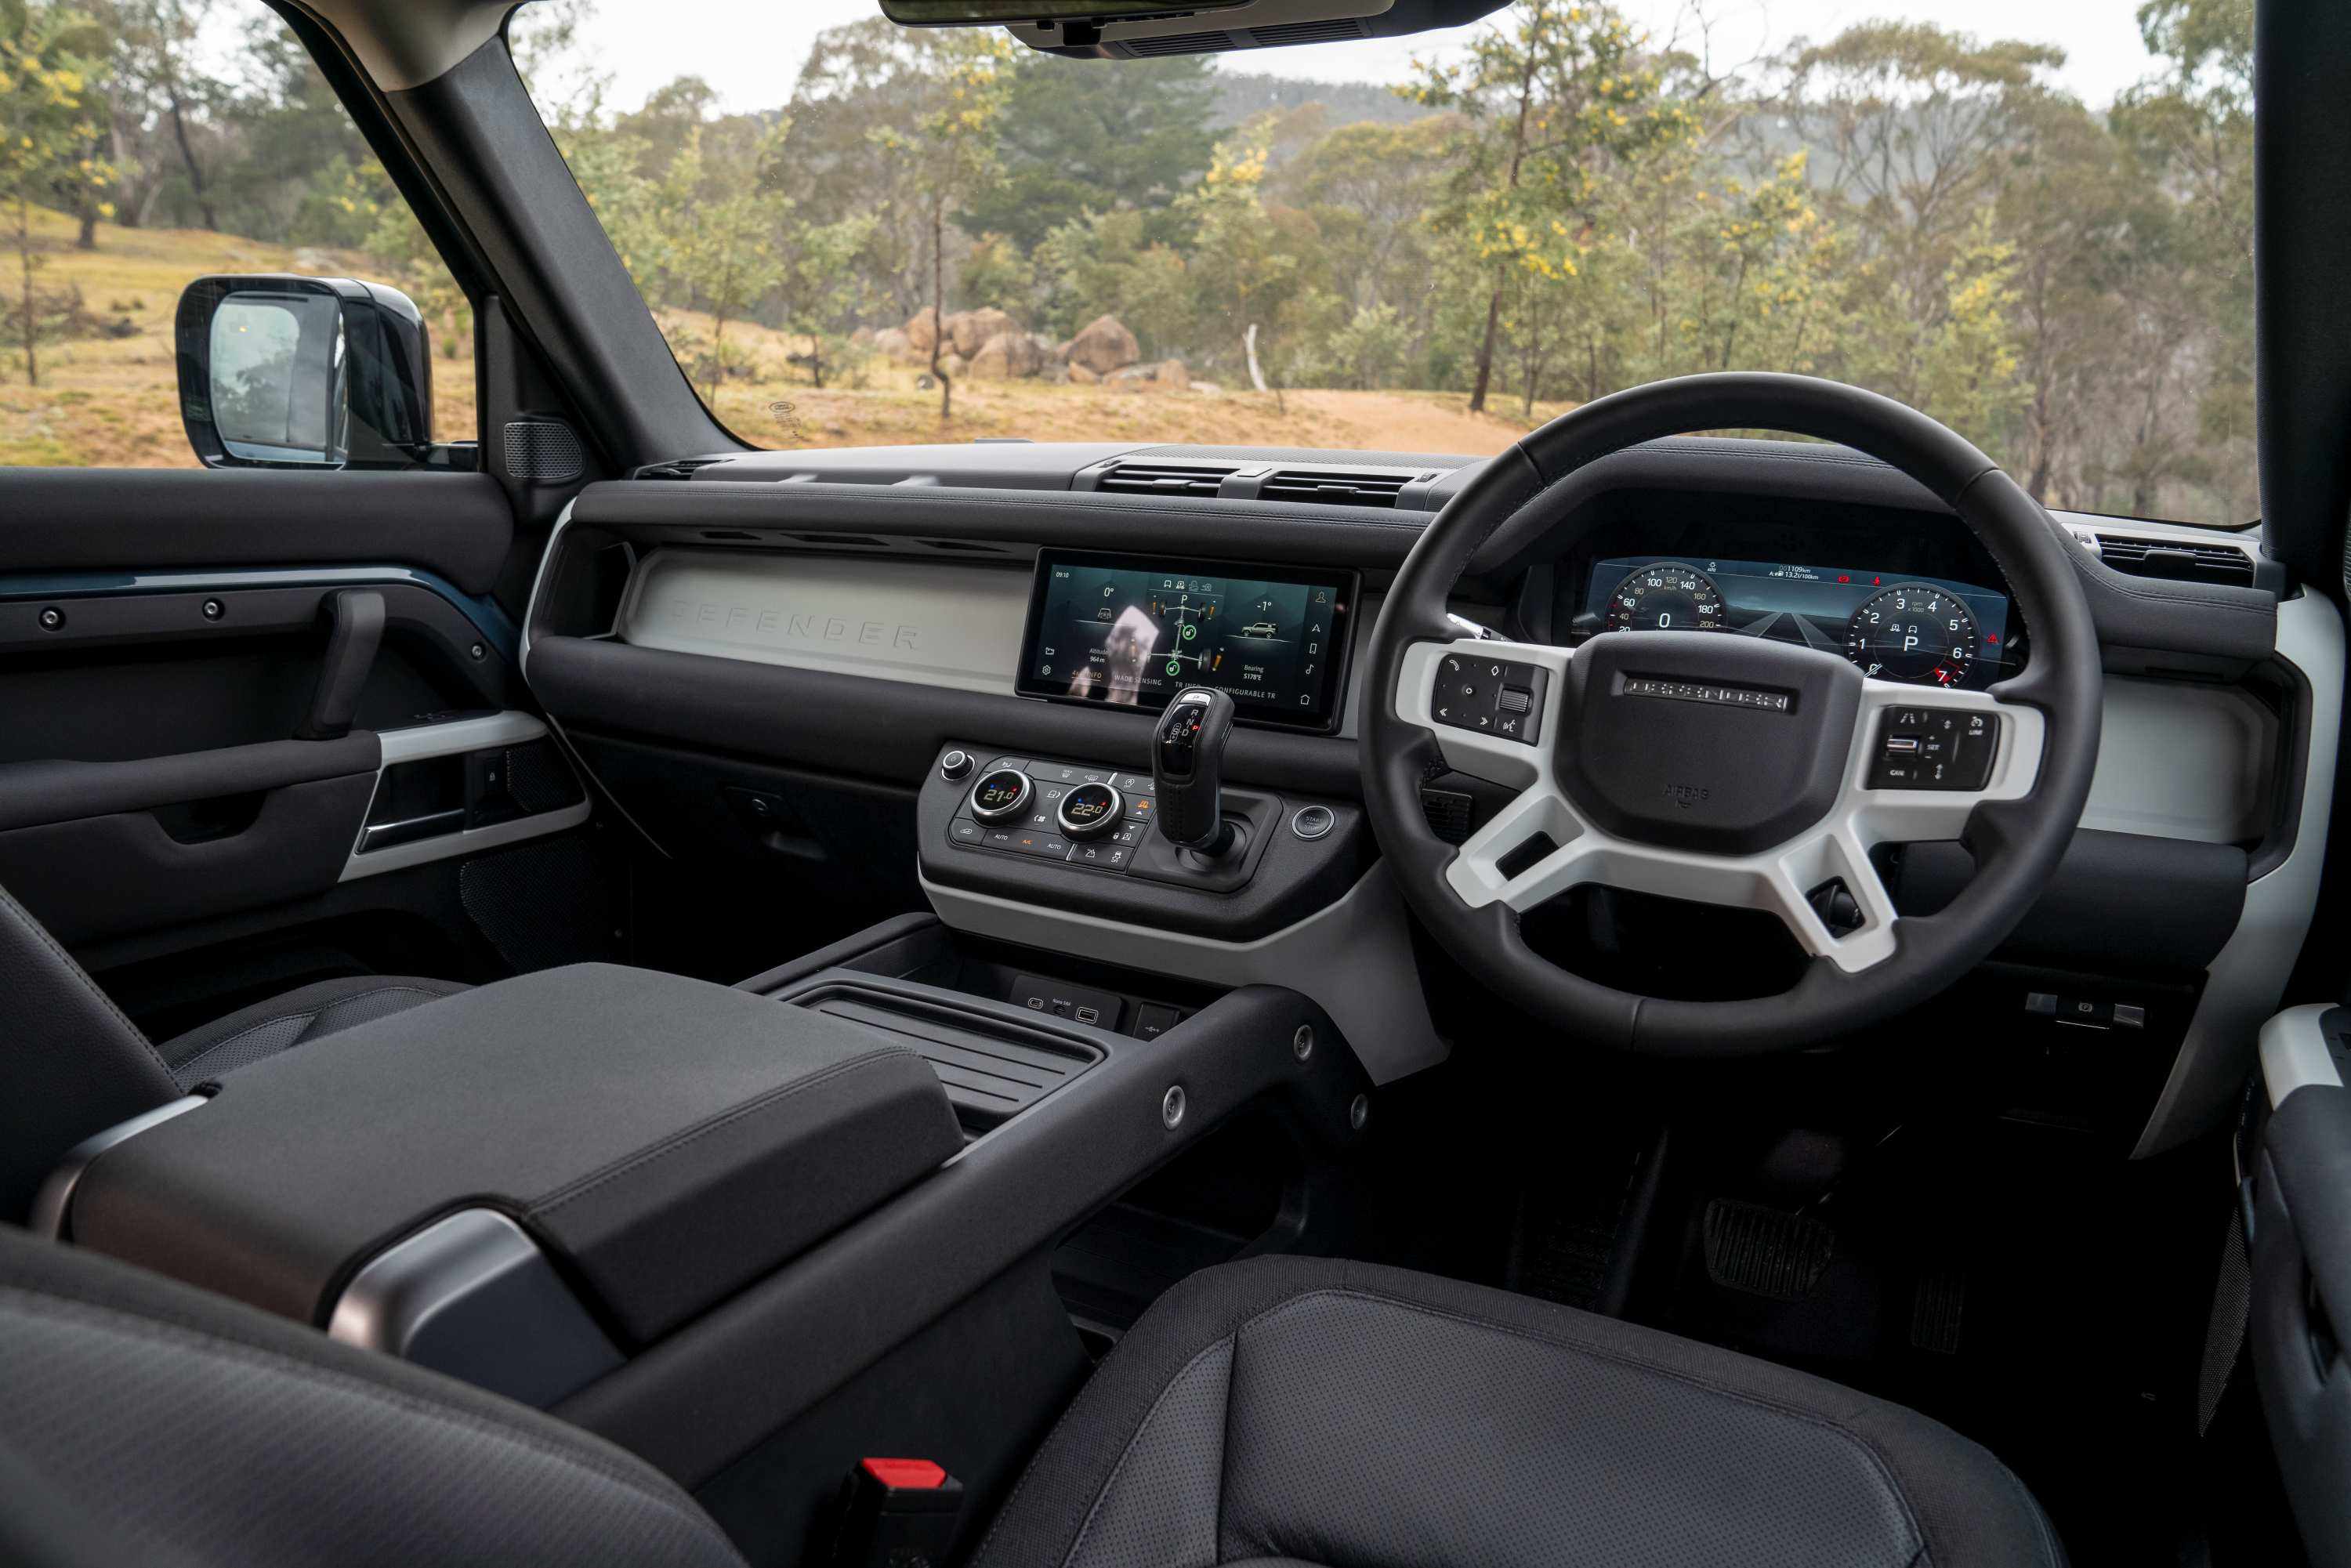 Land Rover Defender interior